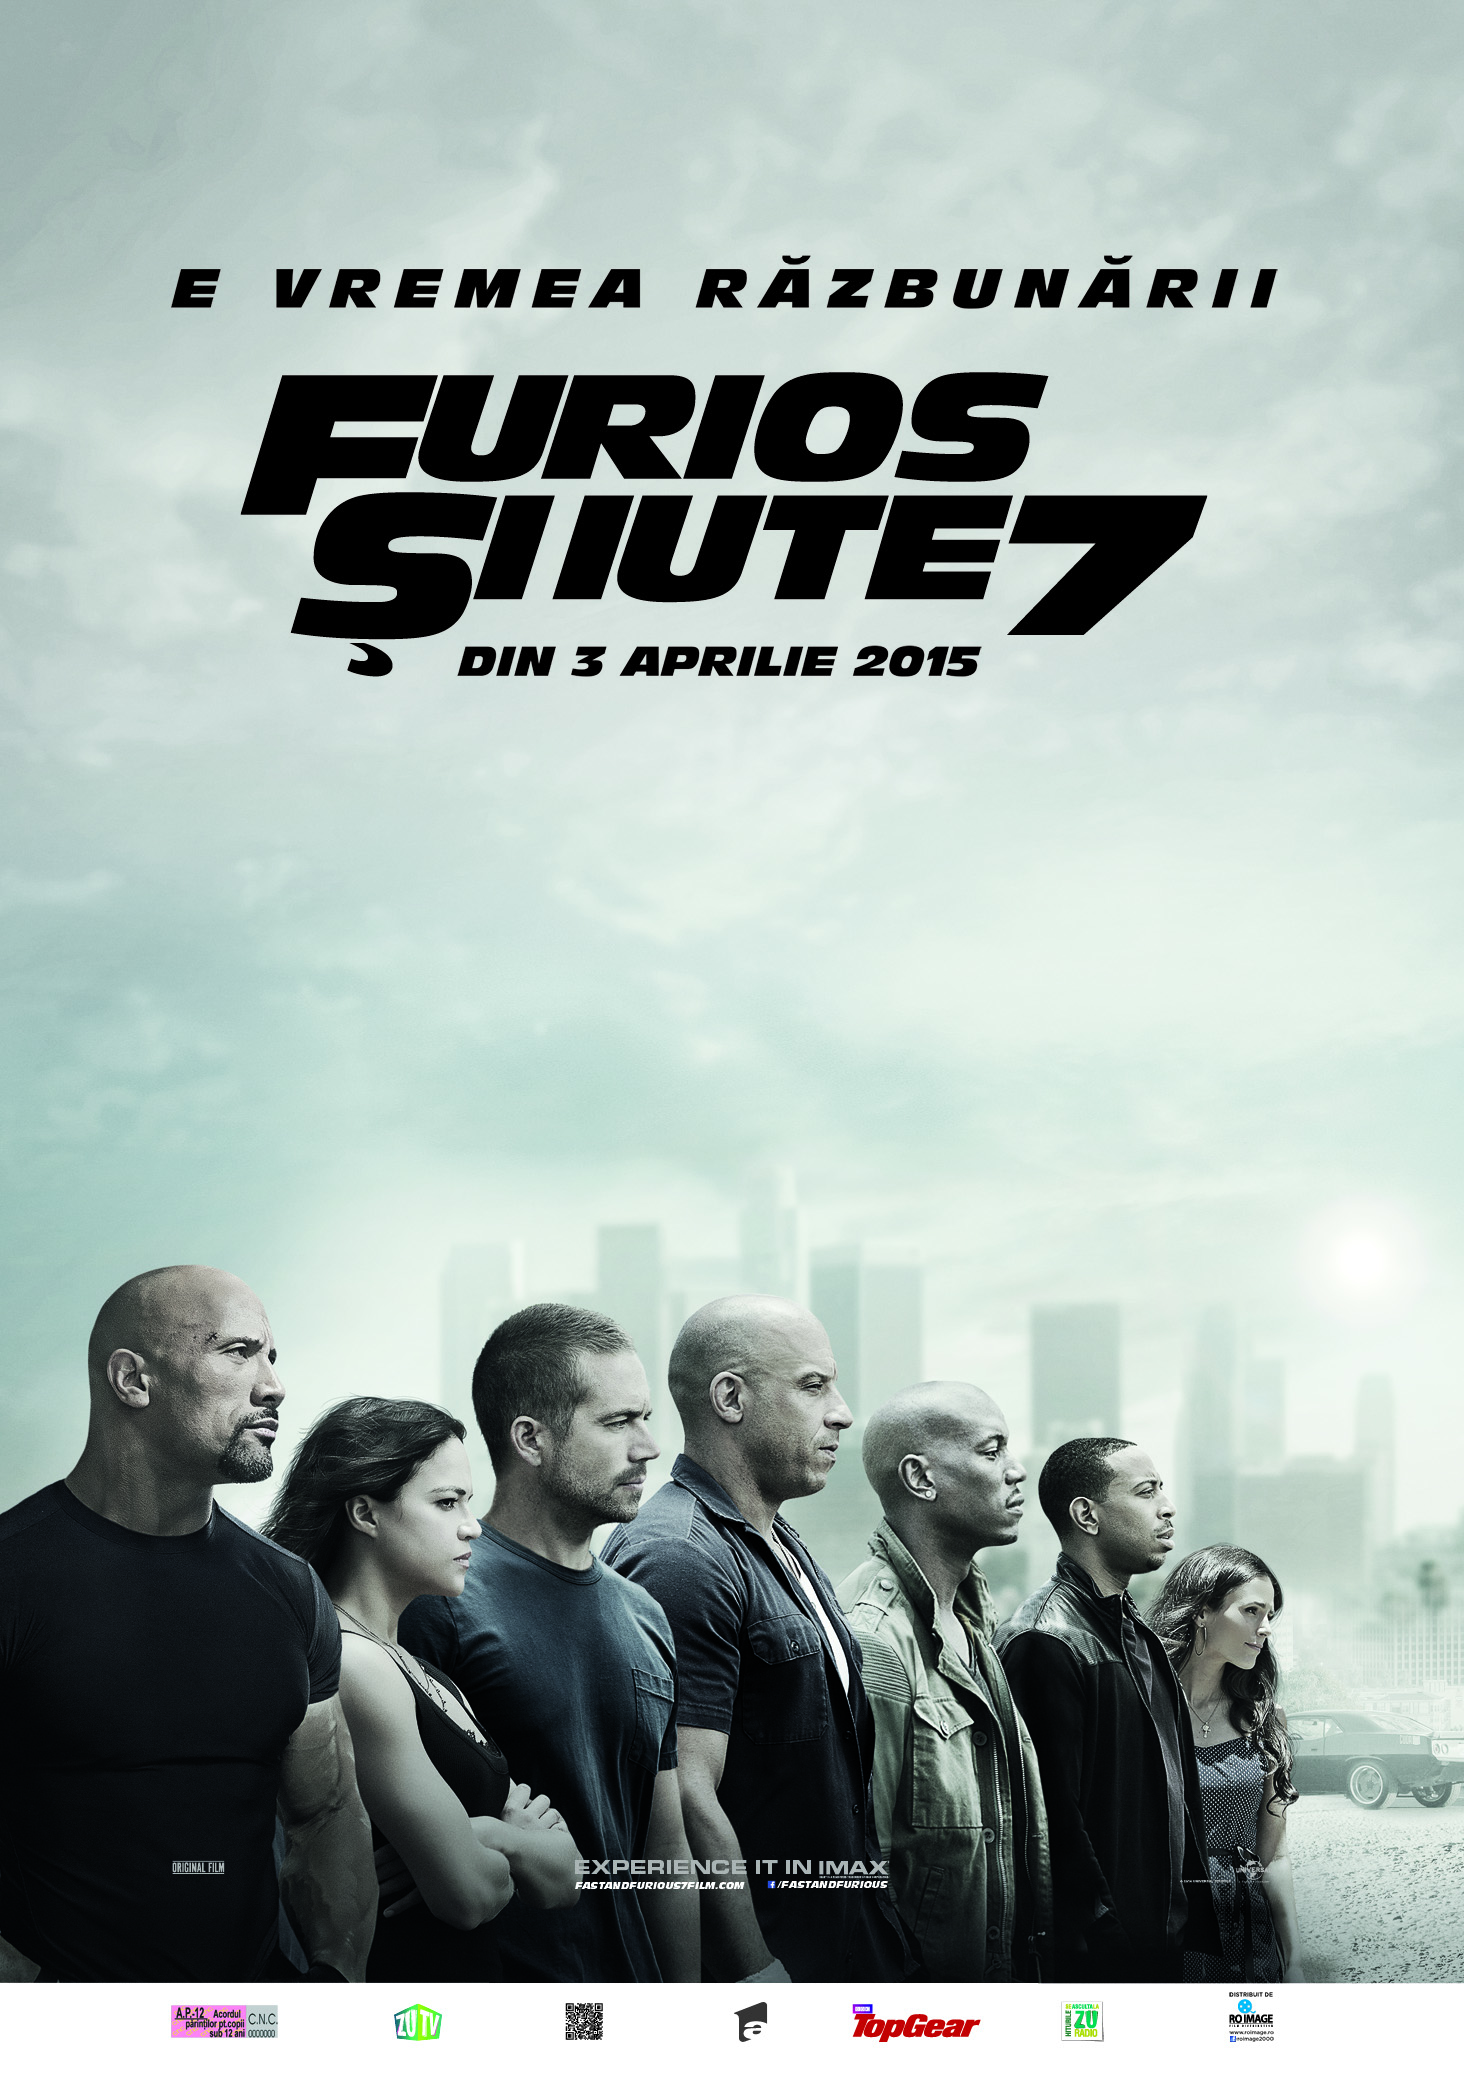 Furios si iute 7 / Fast and Furious 7